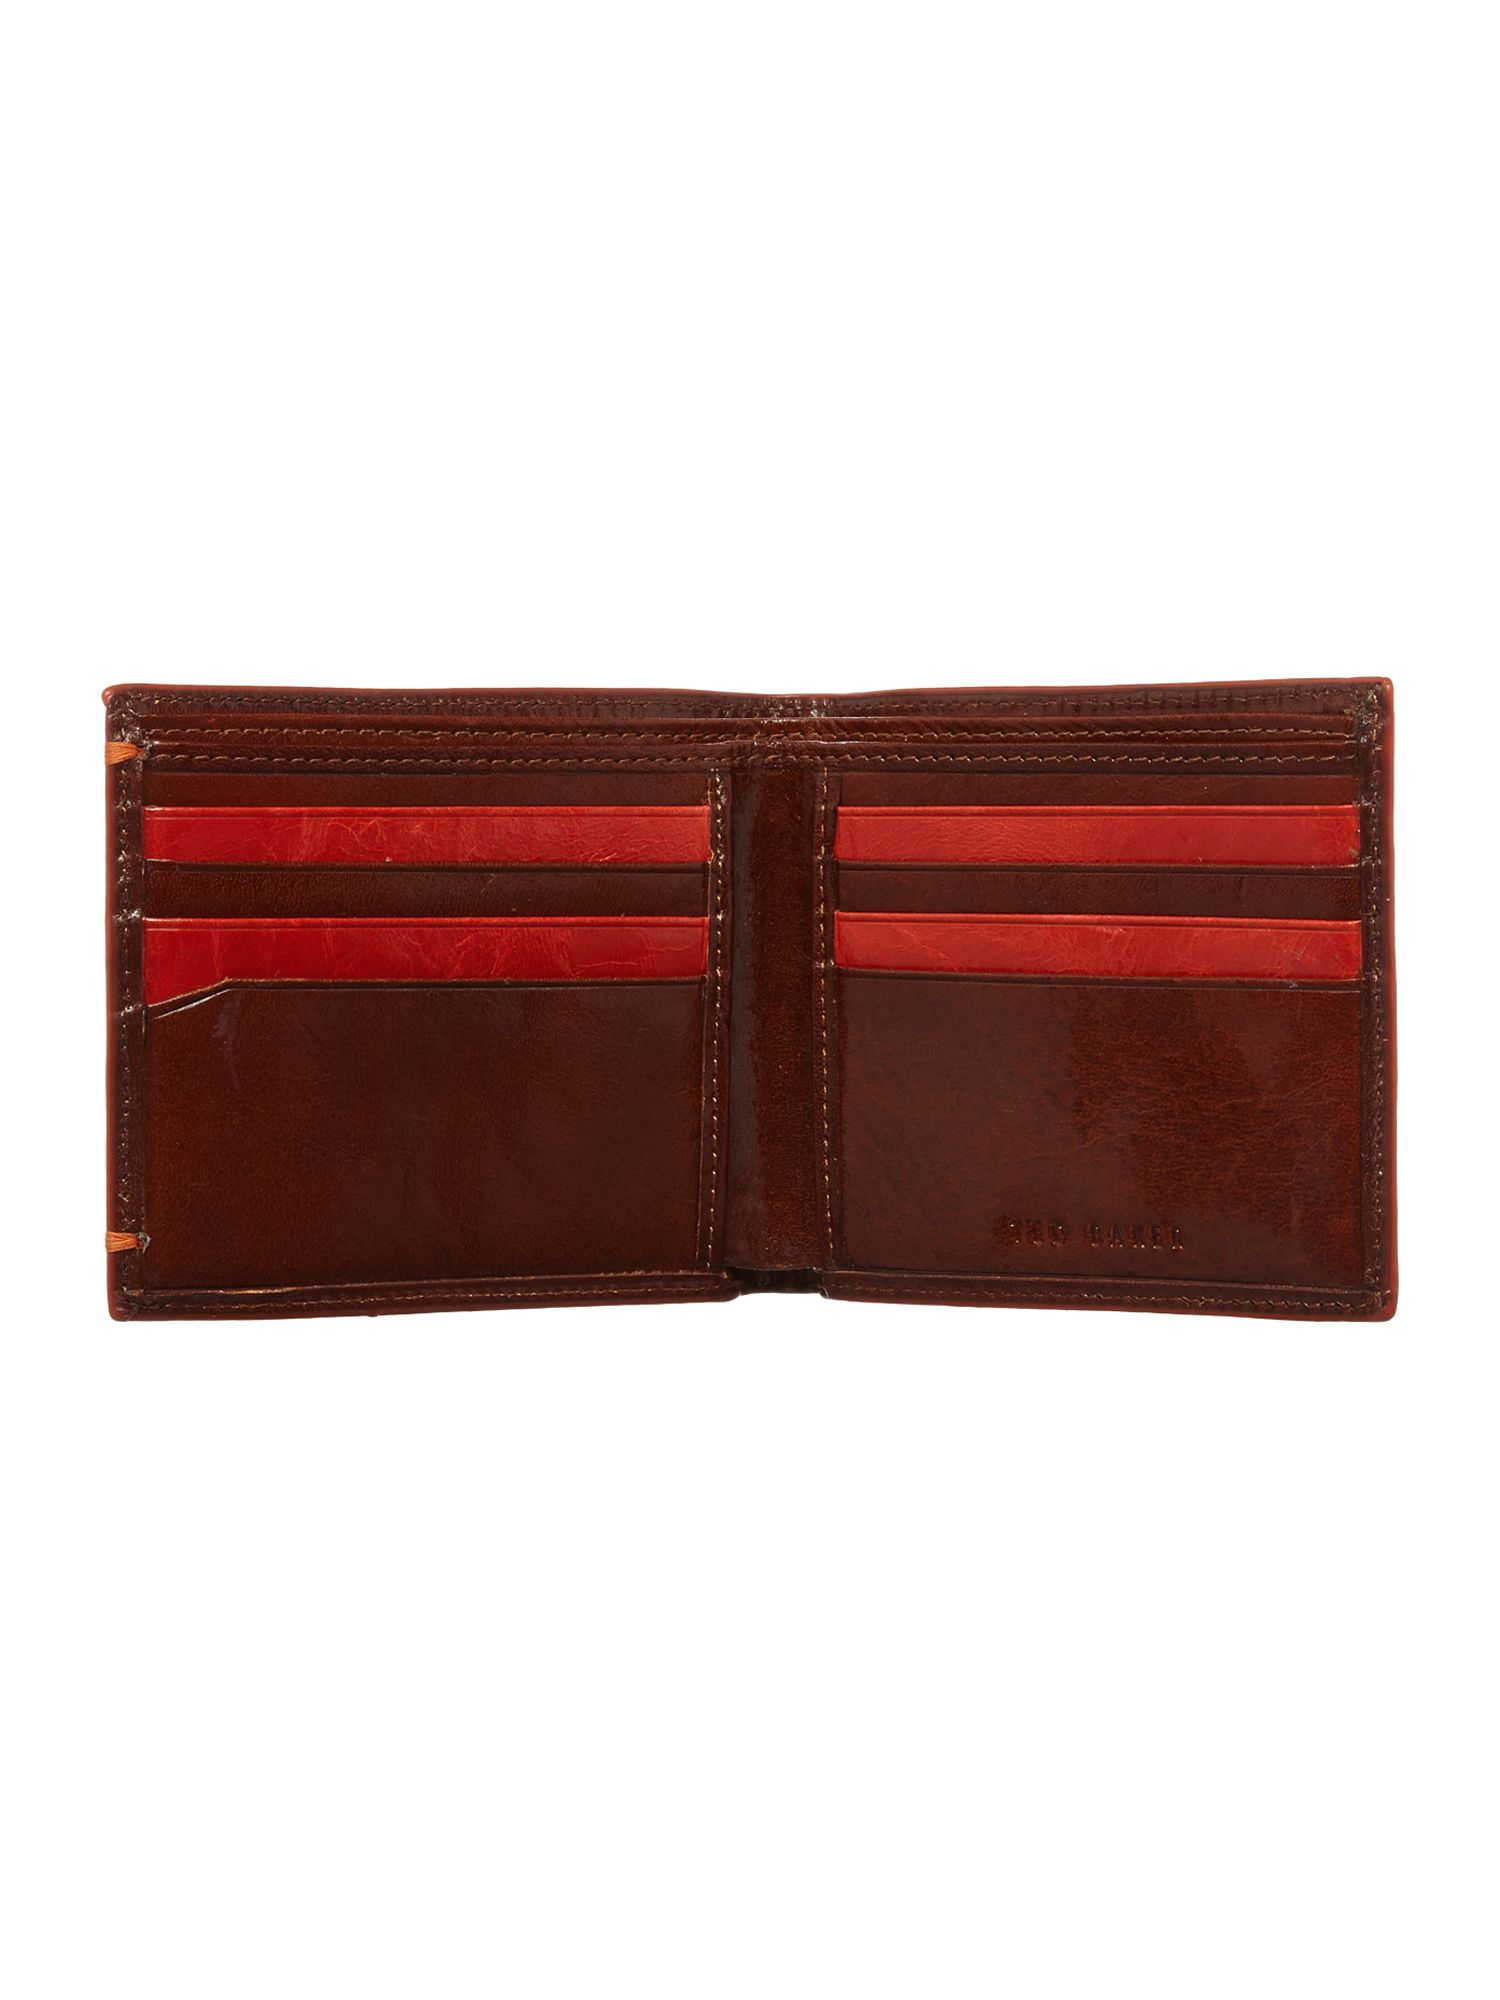 Edge paint bifold wallet